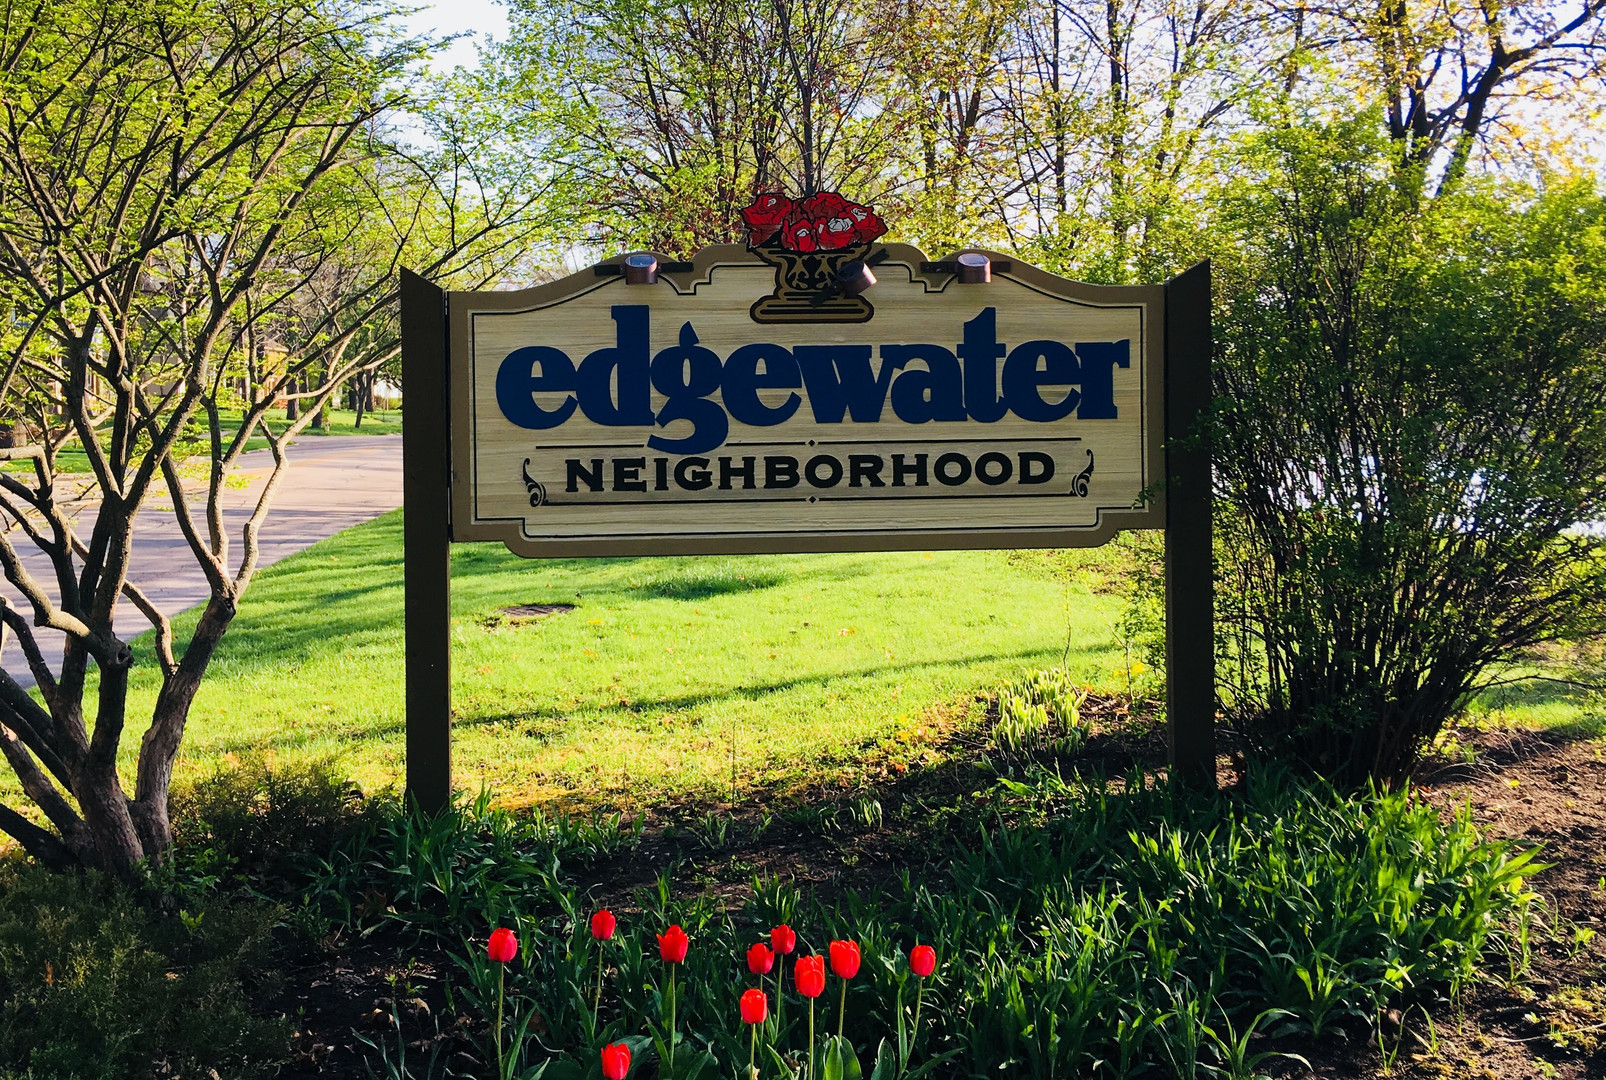 Springtime for Edgewater